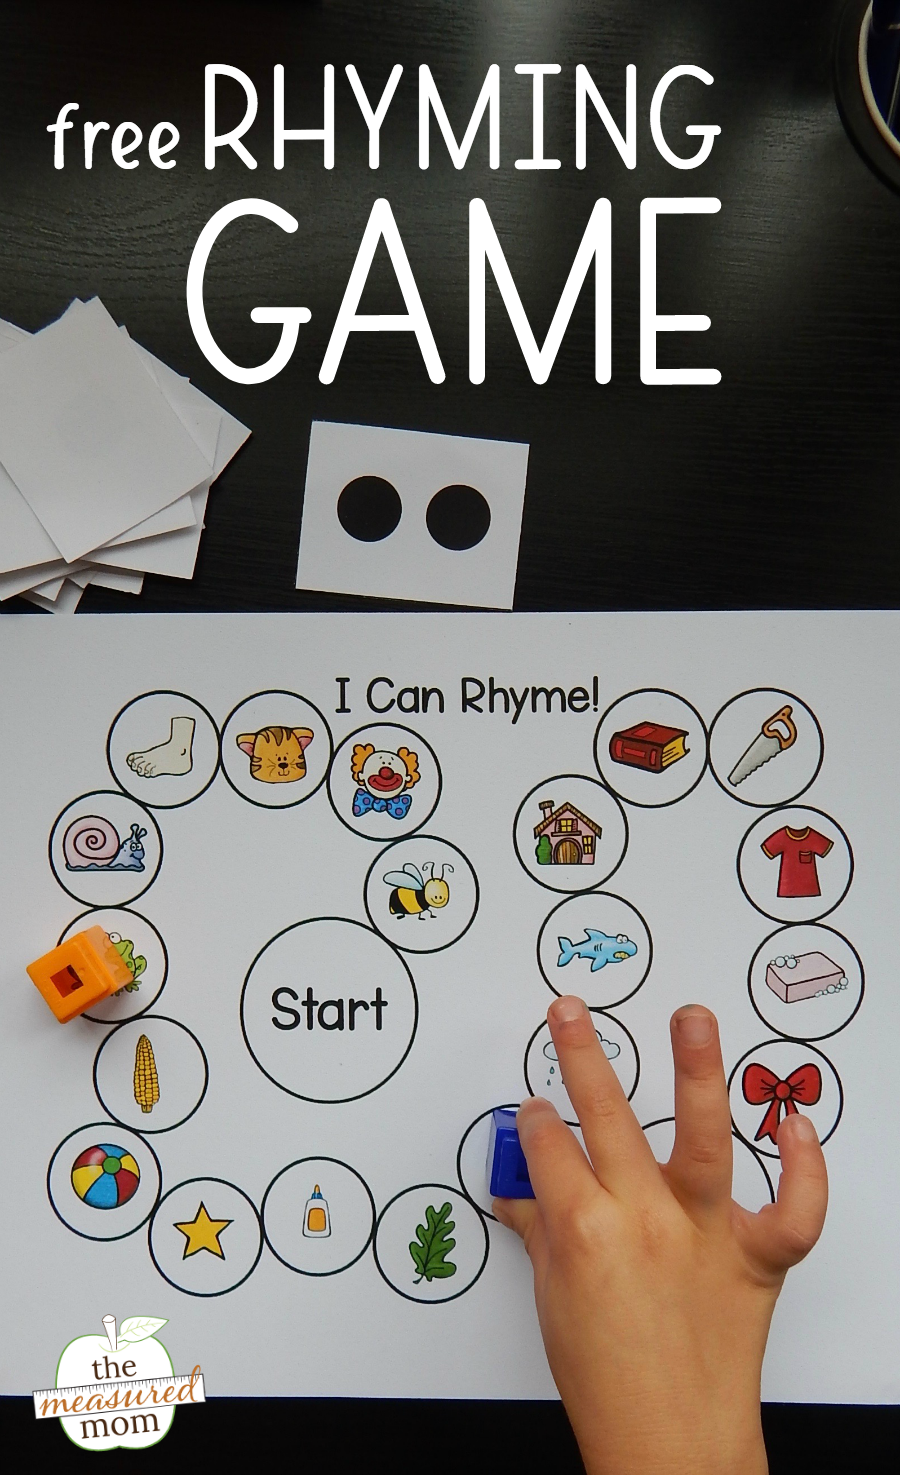 Simple rhyming game - The Measured Mom